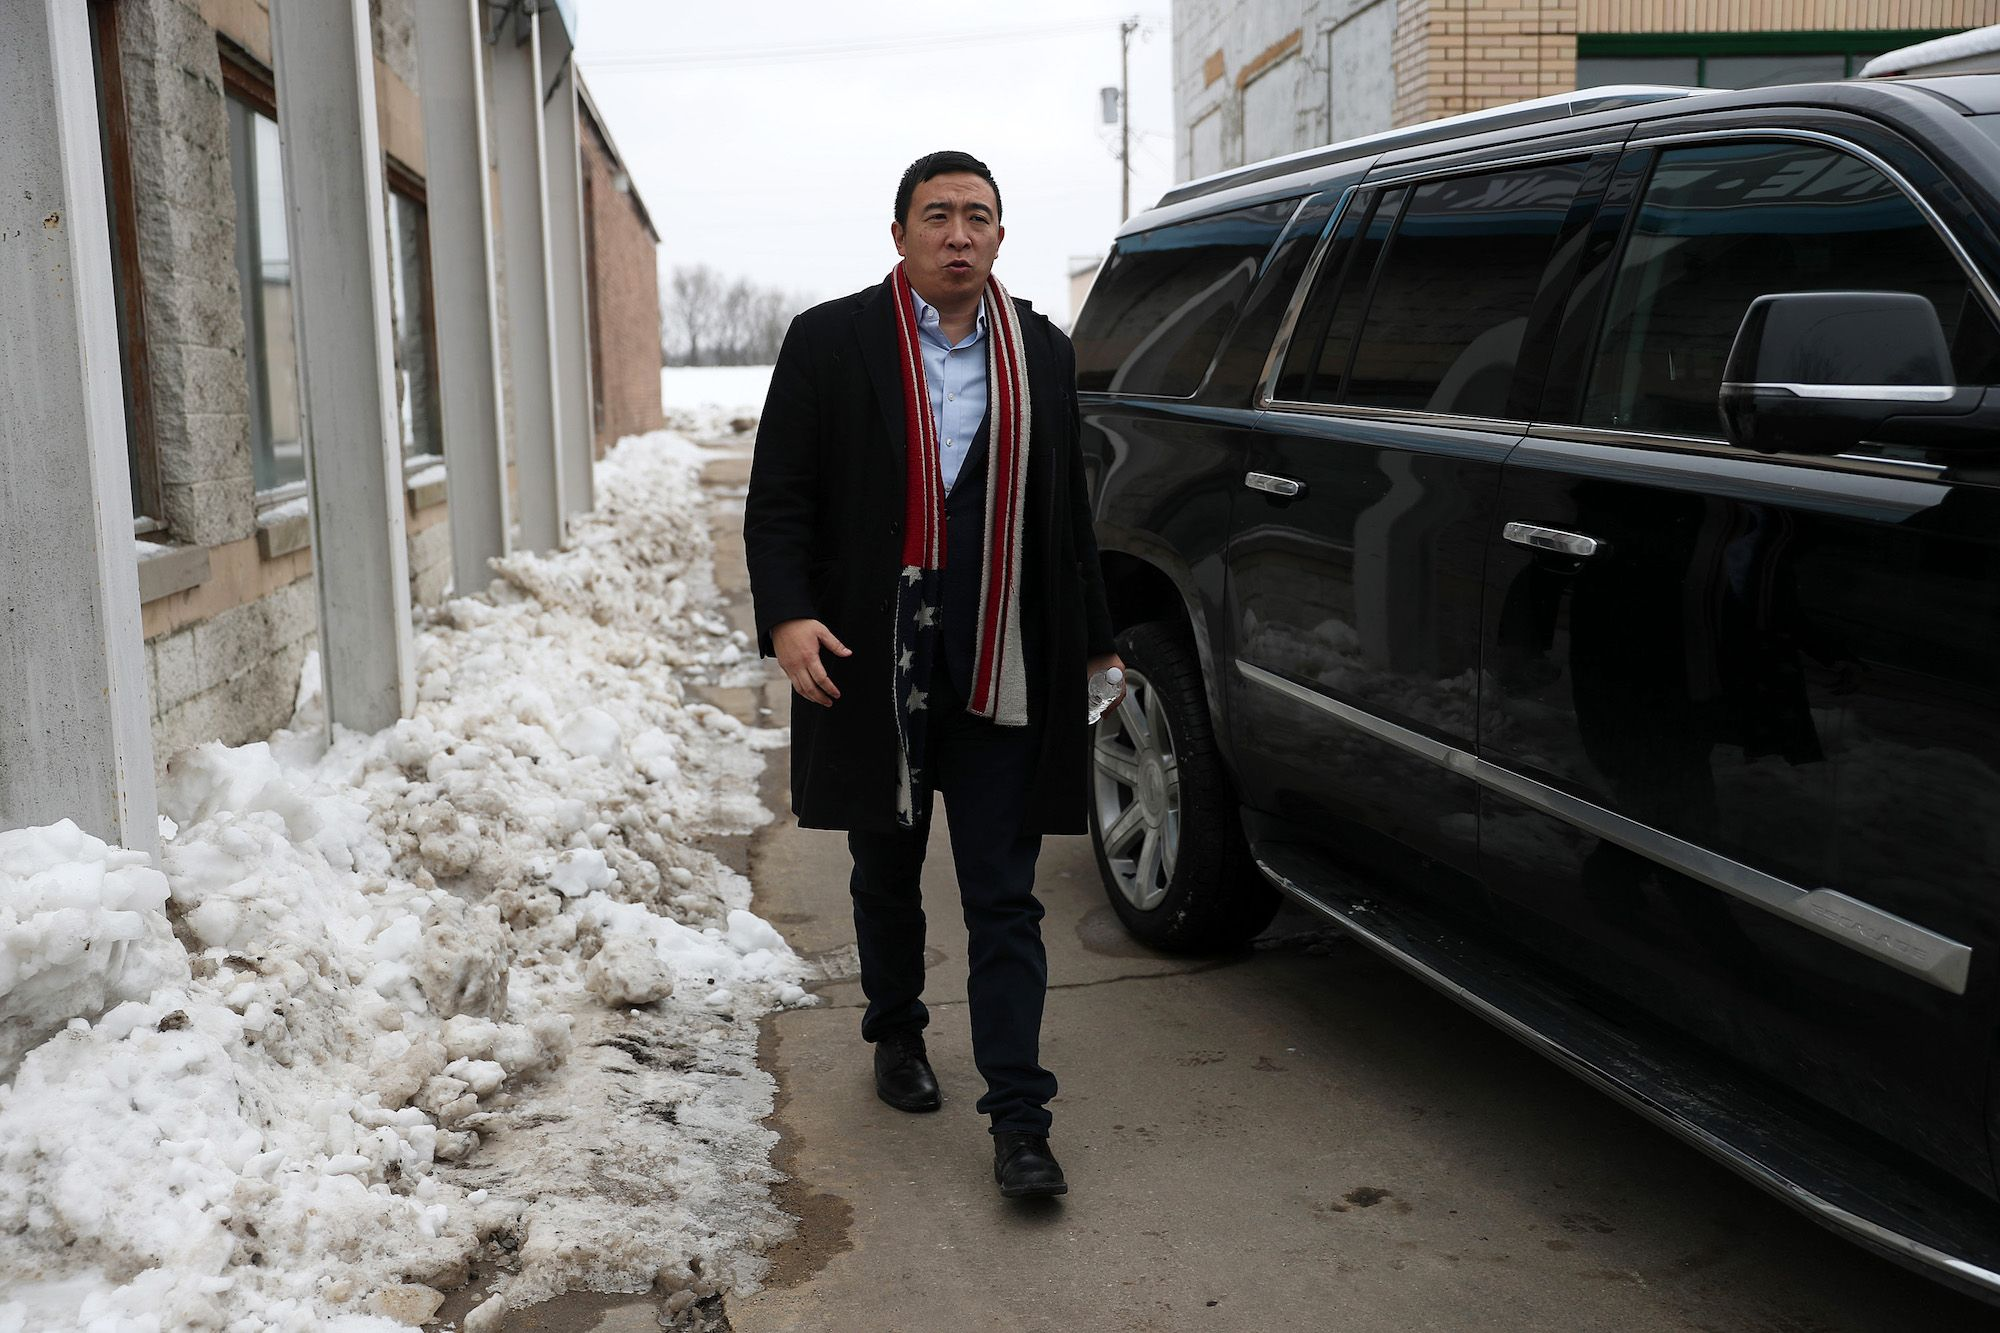 At an Iowa Native Settlement, the Big Caucus Surprise Was Andrew Yang